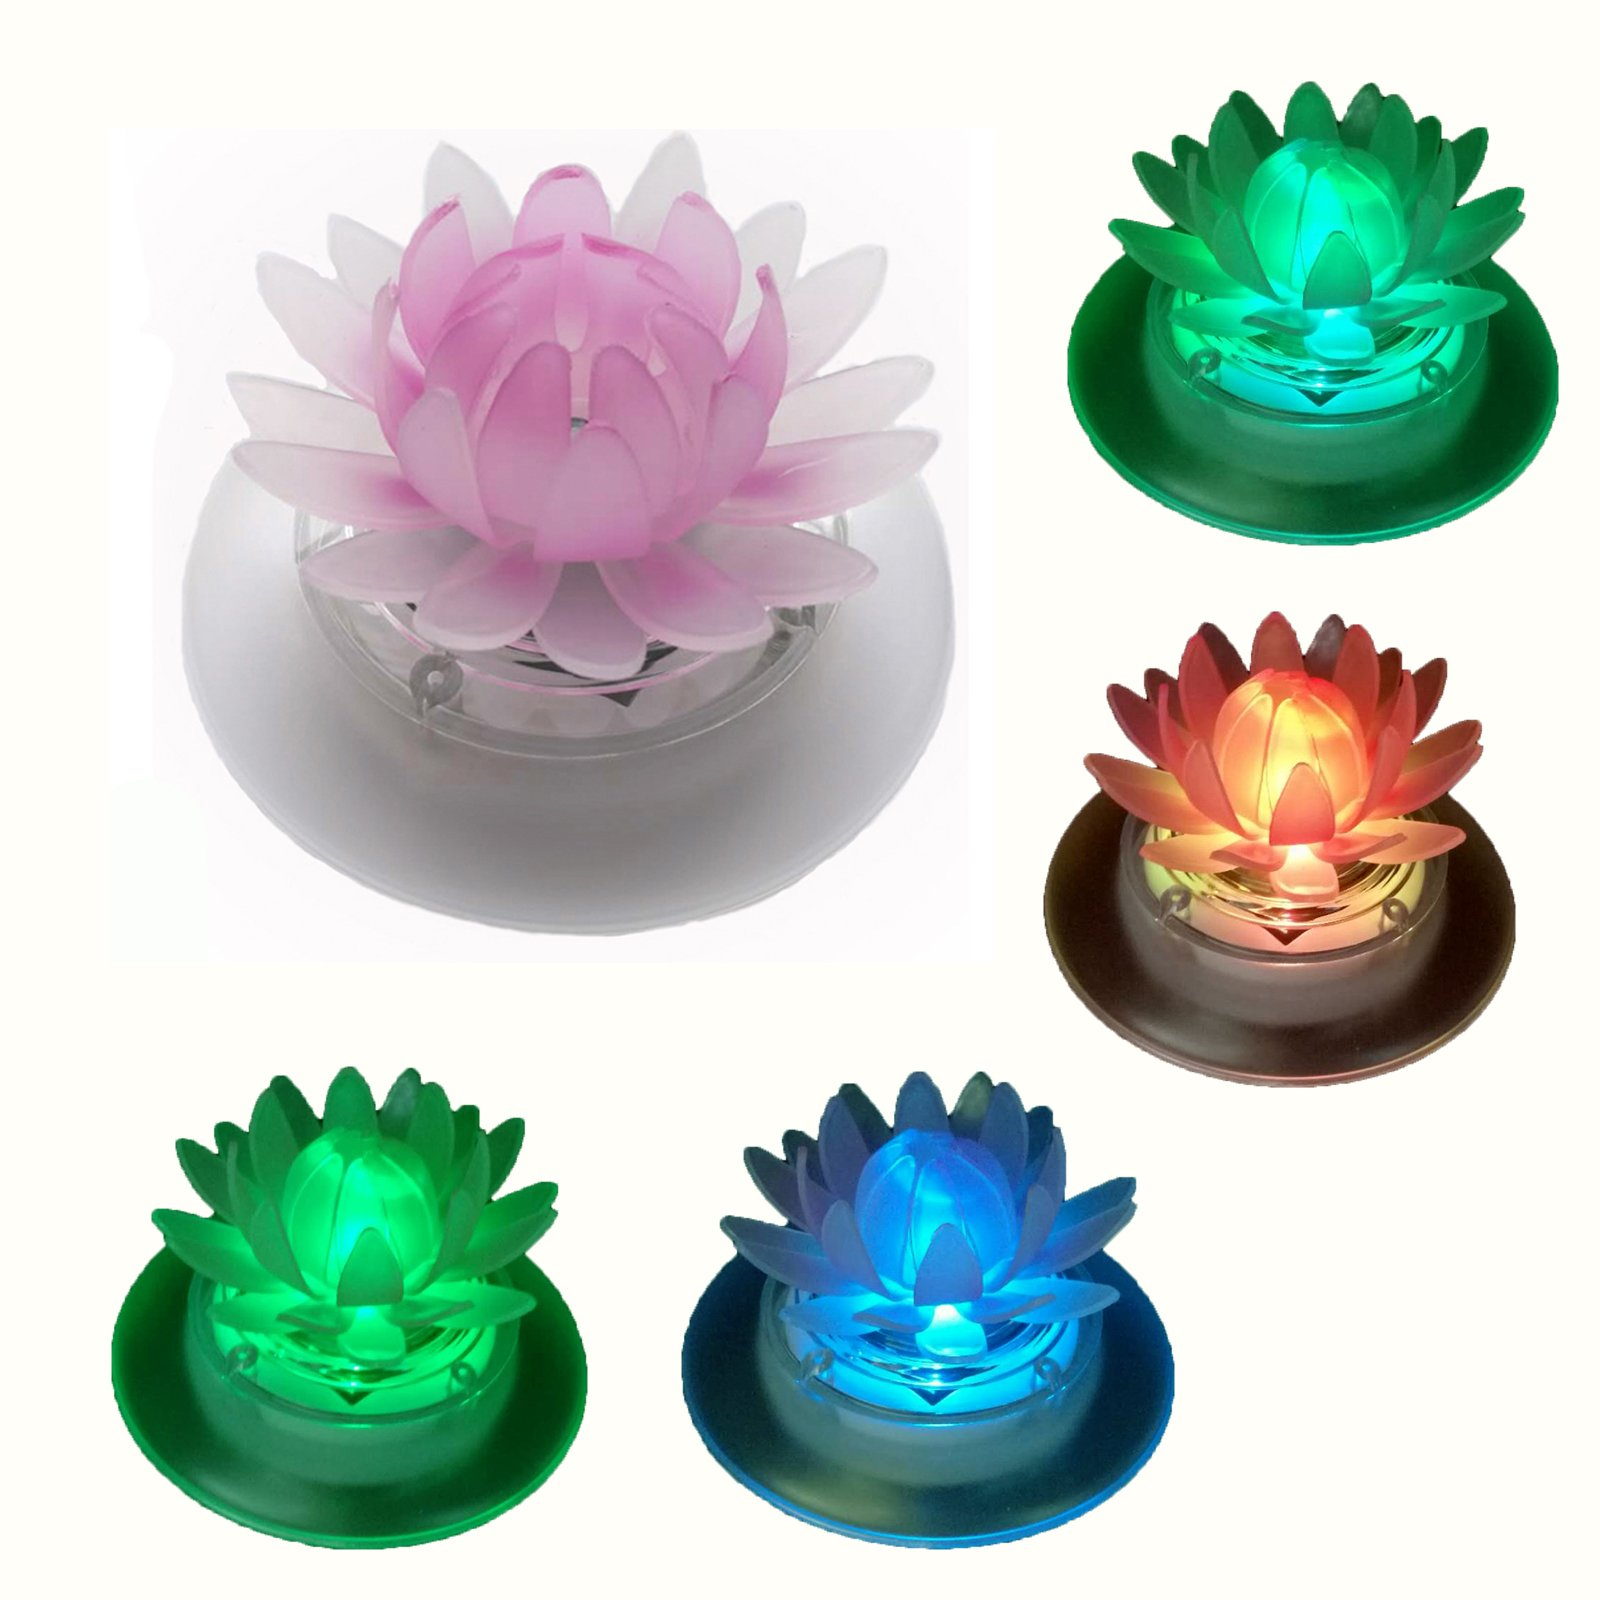 pearlstar Solar Floating Lights Waterproof LED RGB Floating Night Lights for Swimming Pool or Pond Decoration (1 Pcs Lotus)